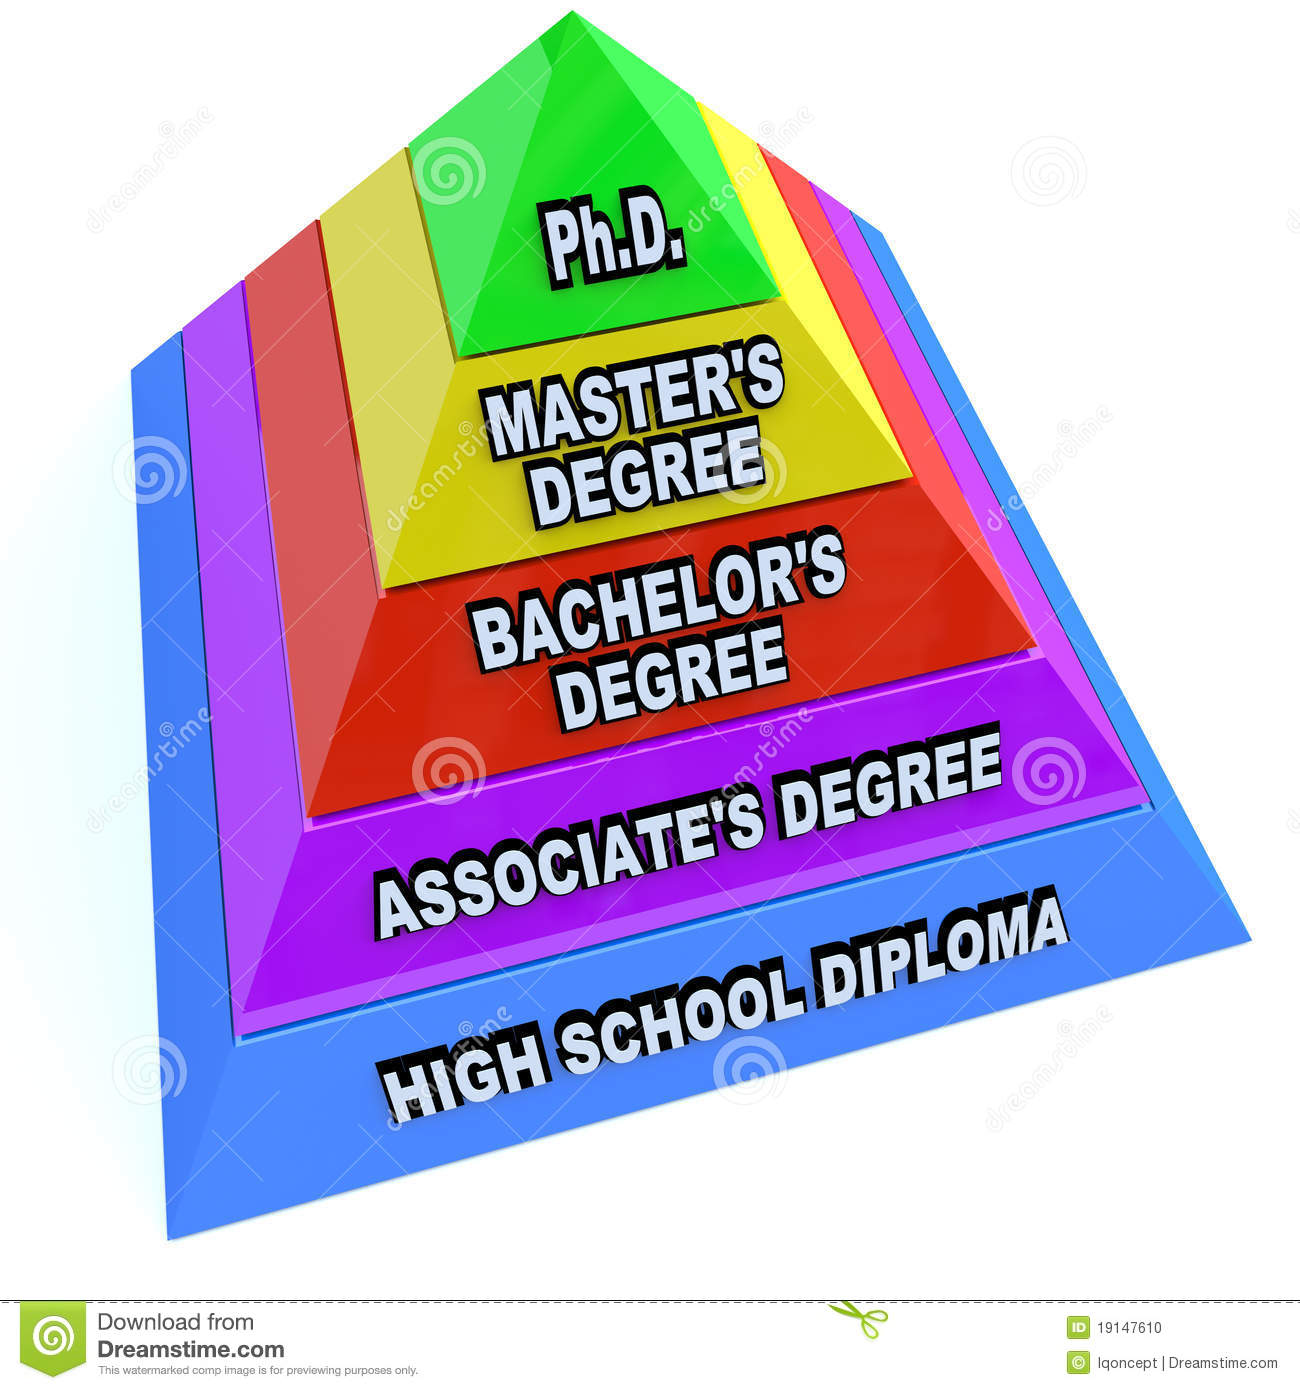 What's the difference between an associate of arts and an associate of science in business?